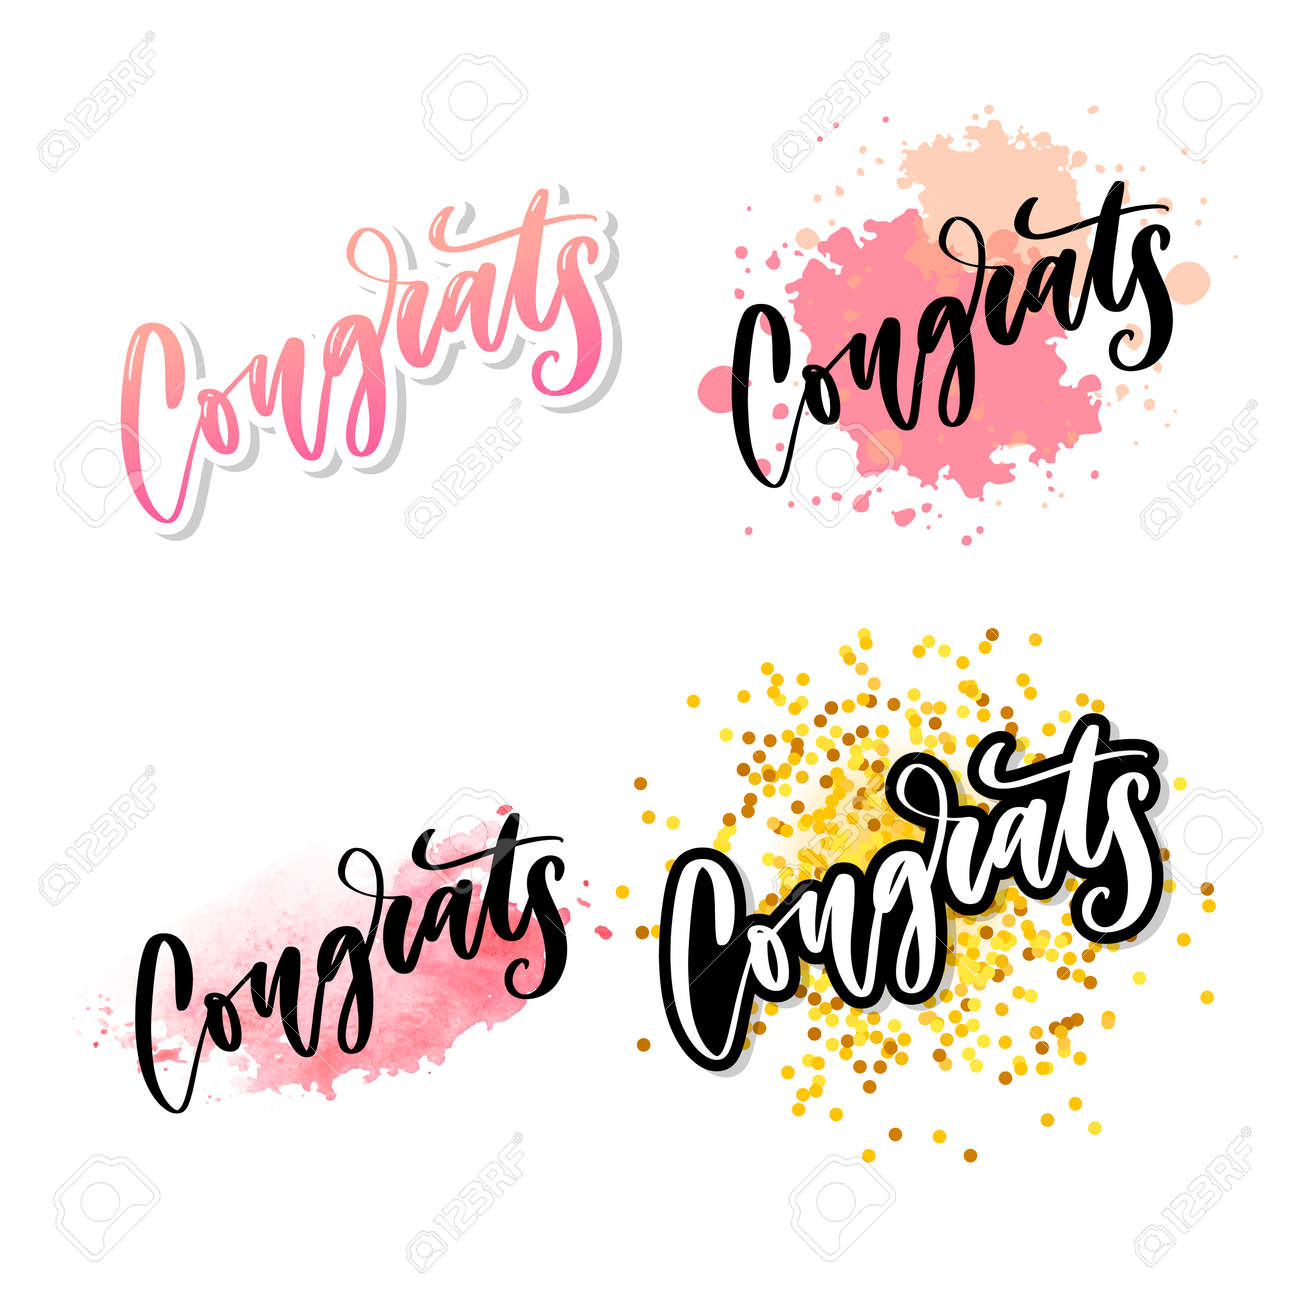 graphic about Congratulations Card Printable known as Congrats hand created lettering for congratulations card, greeting..